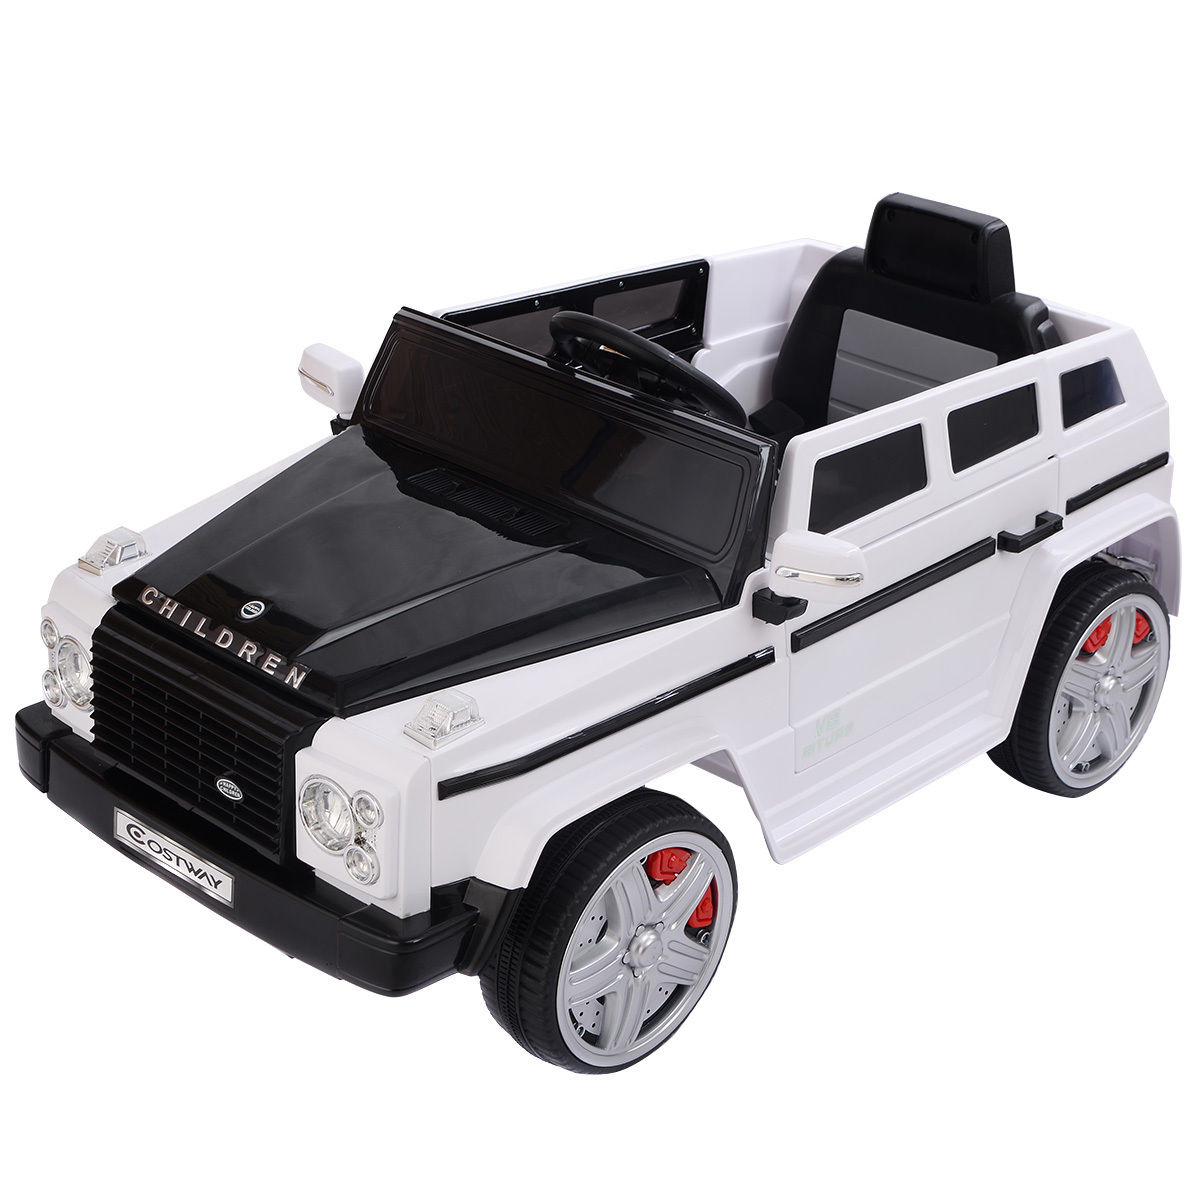 Costway 12V MP3 Kids Ride On Car Battery RC Remote Control w/ LED Lights White